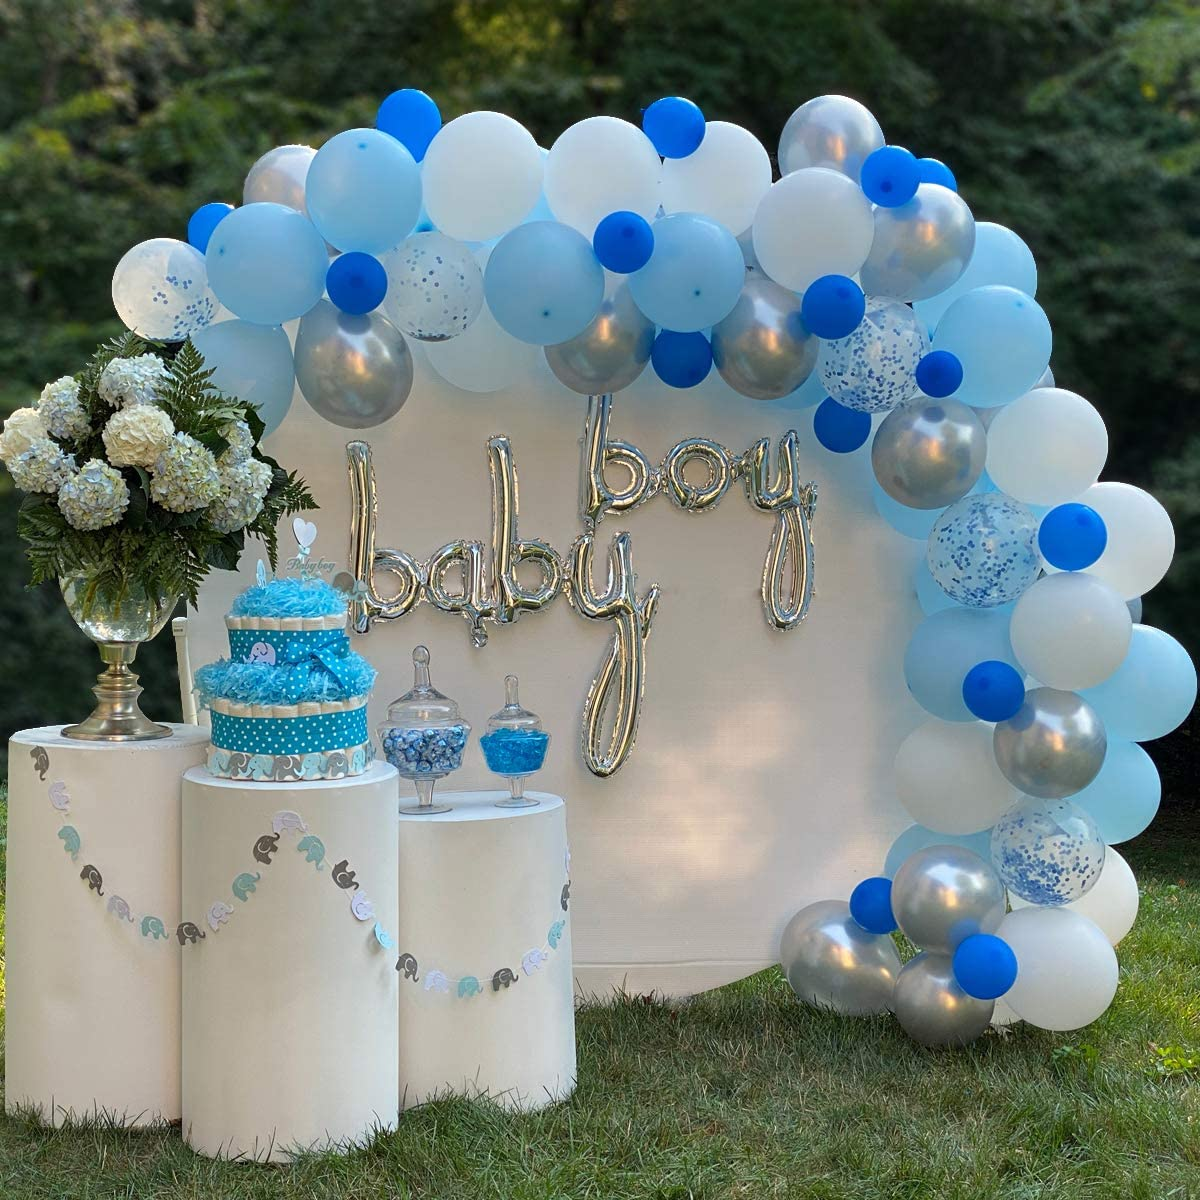 Balloon Arch kit with pump- Balloon Garland Arch Kit, 110 pcs, White Royal Blue Silver and Blue Confetti Latex Balloons for Baby Shower, Bridal Shower, Birthday, Wedding, Bachelorette, Anniversary Party Backdrop, DIY Décor, Elephant Decorations Theme